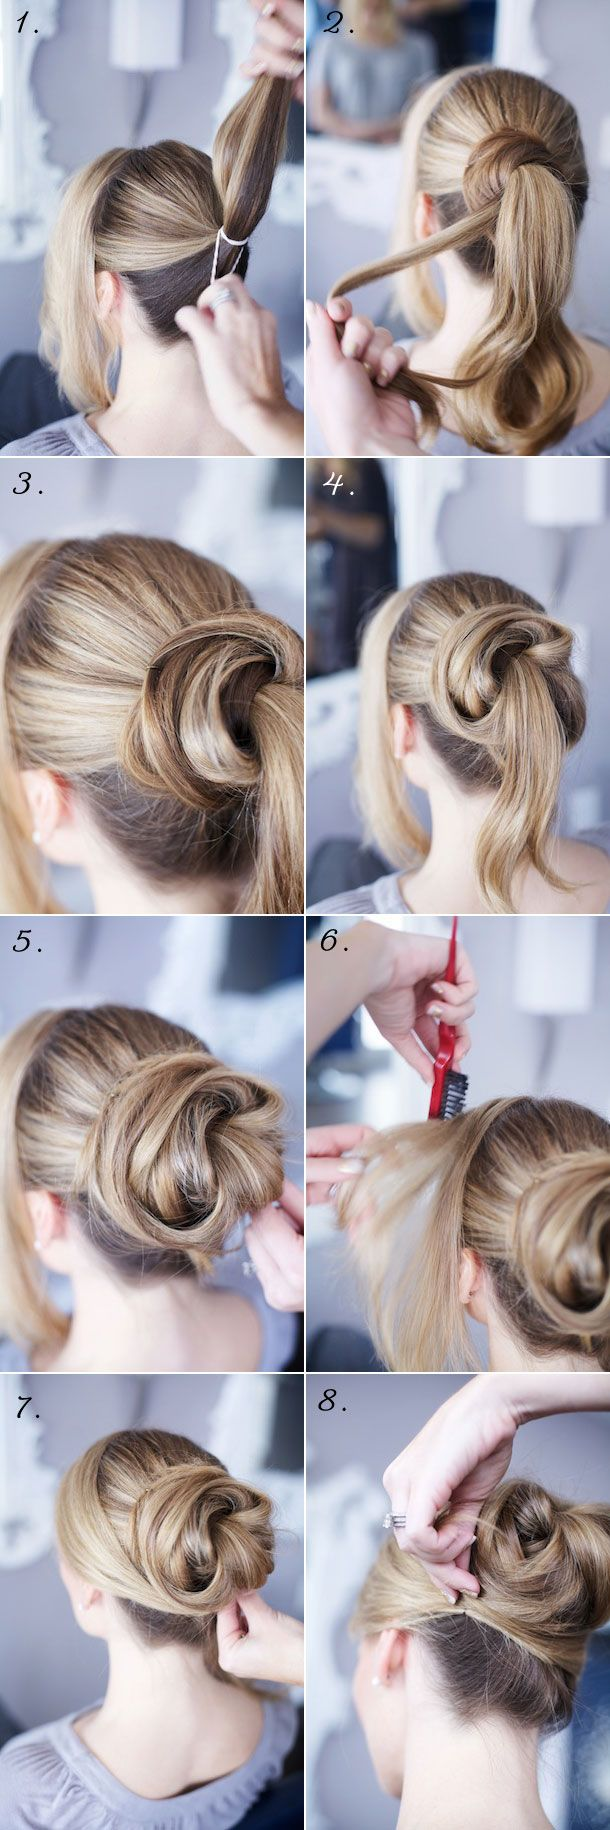 DIY Large Twisted Bun Tutorial